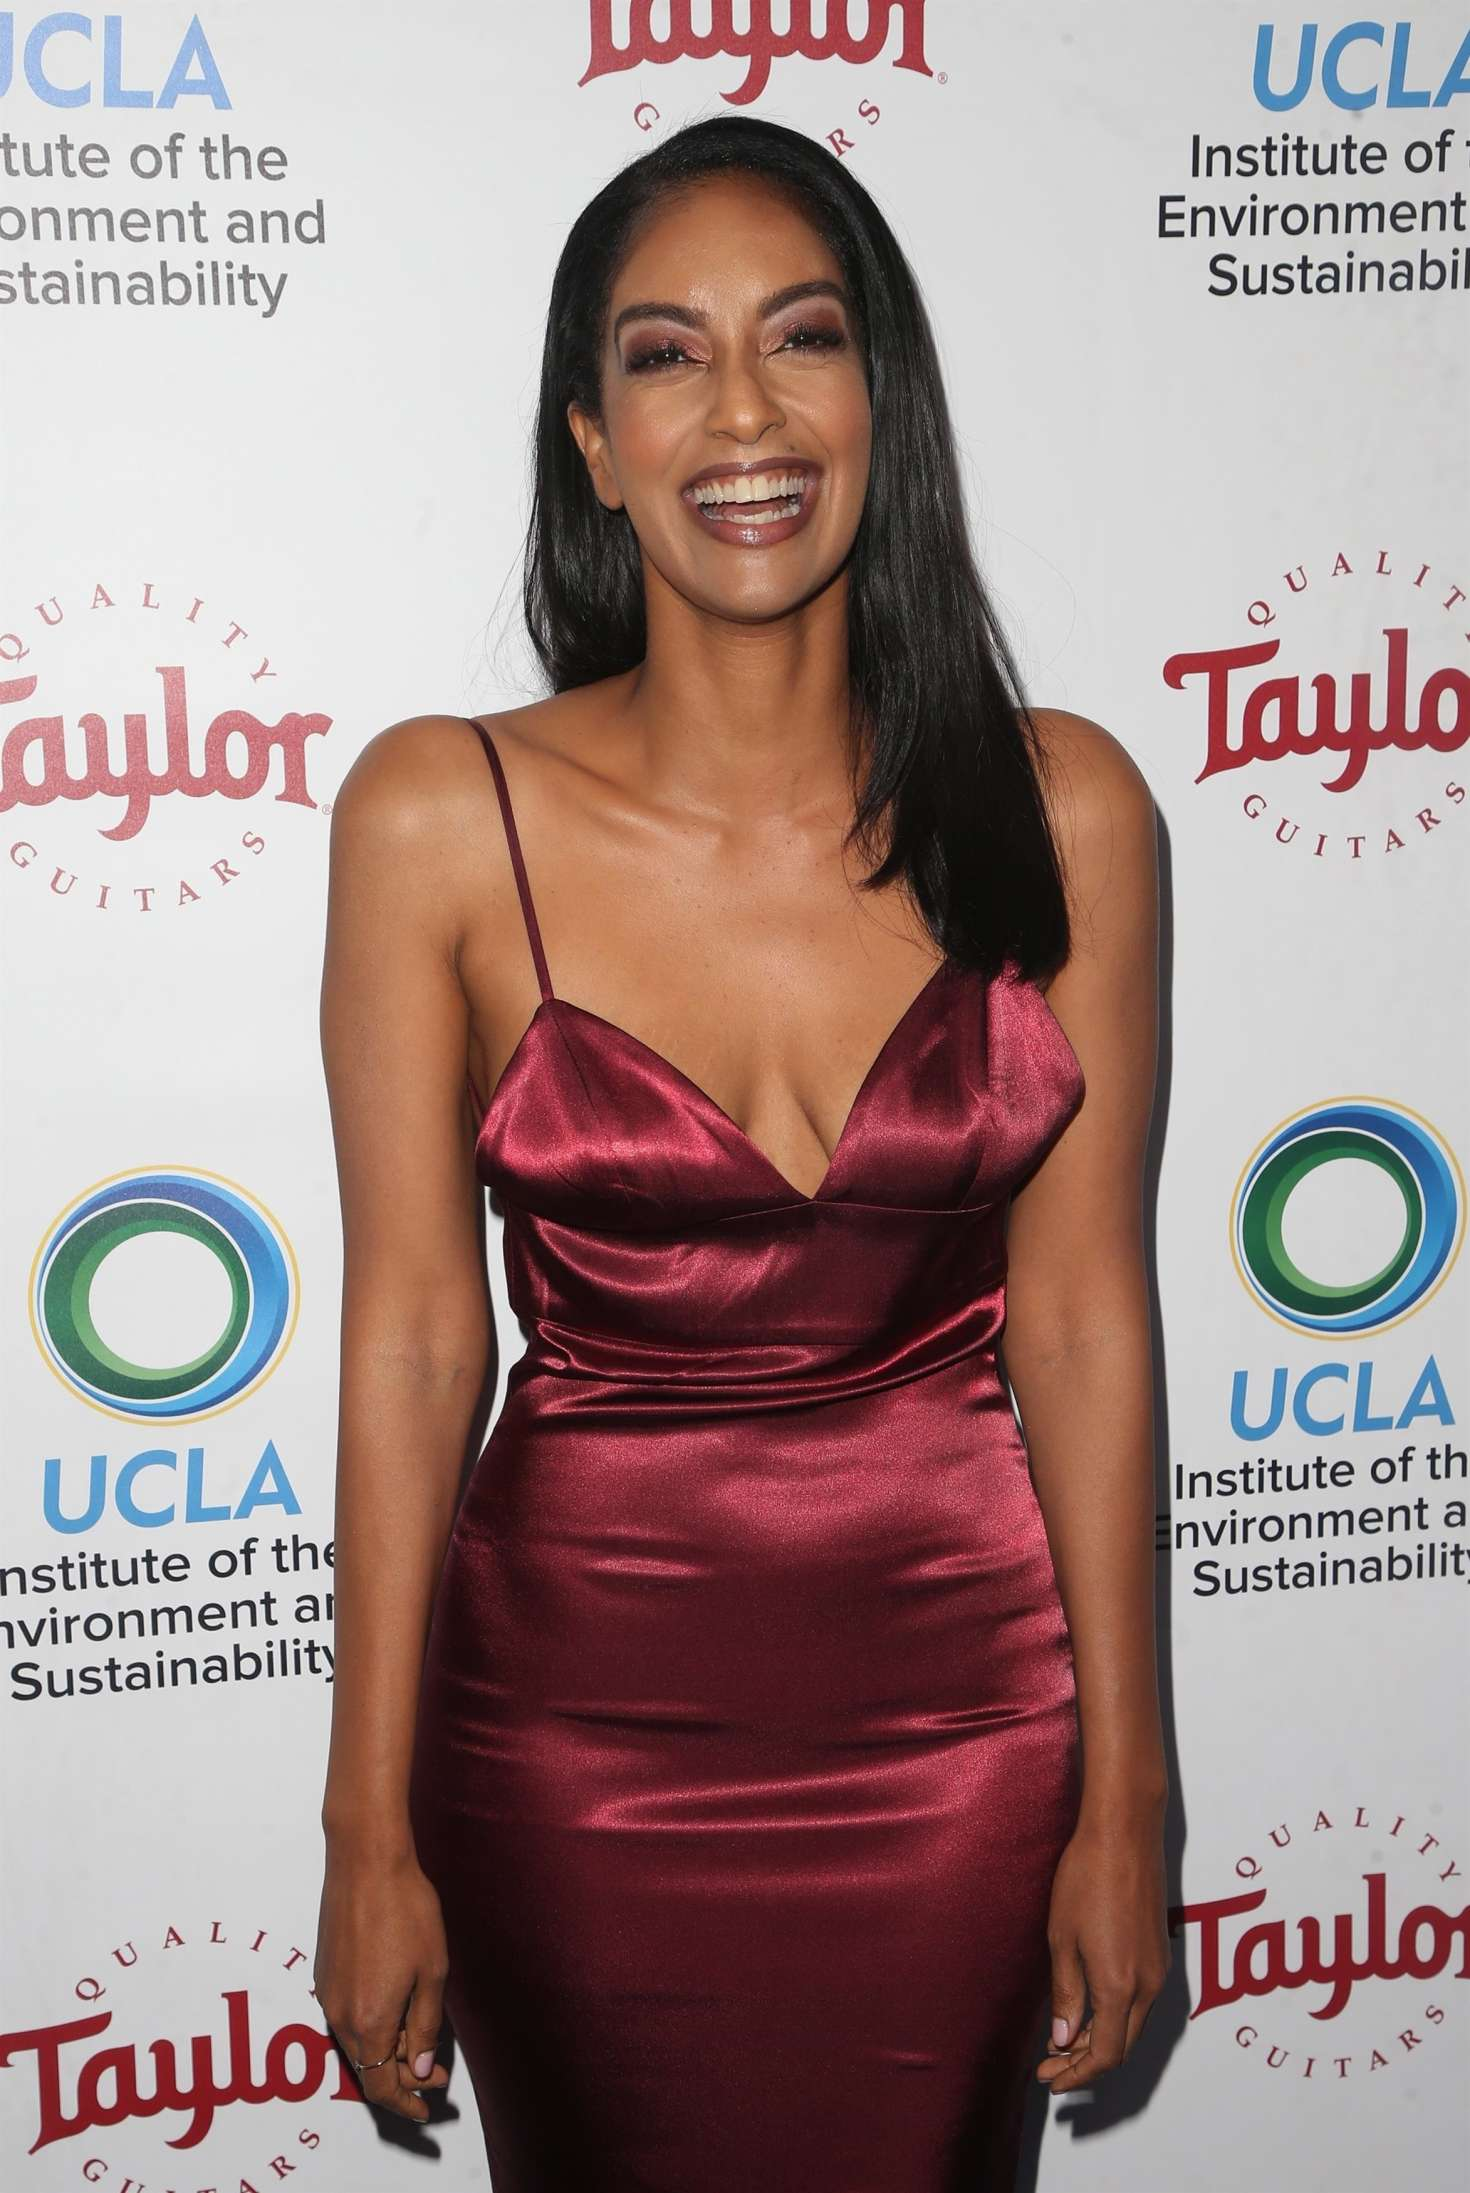 Azie Tesfai - 2018 UCLA's Institute of the Environment and Sustainability Gala in LA